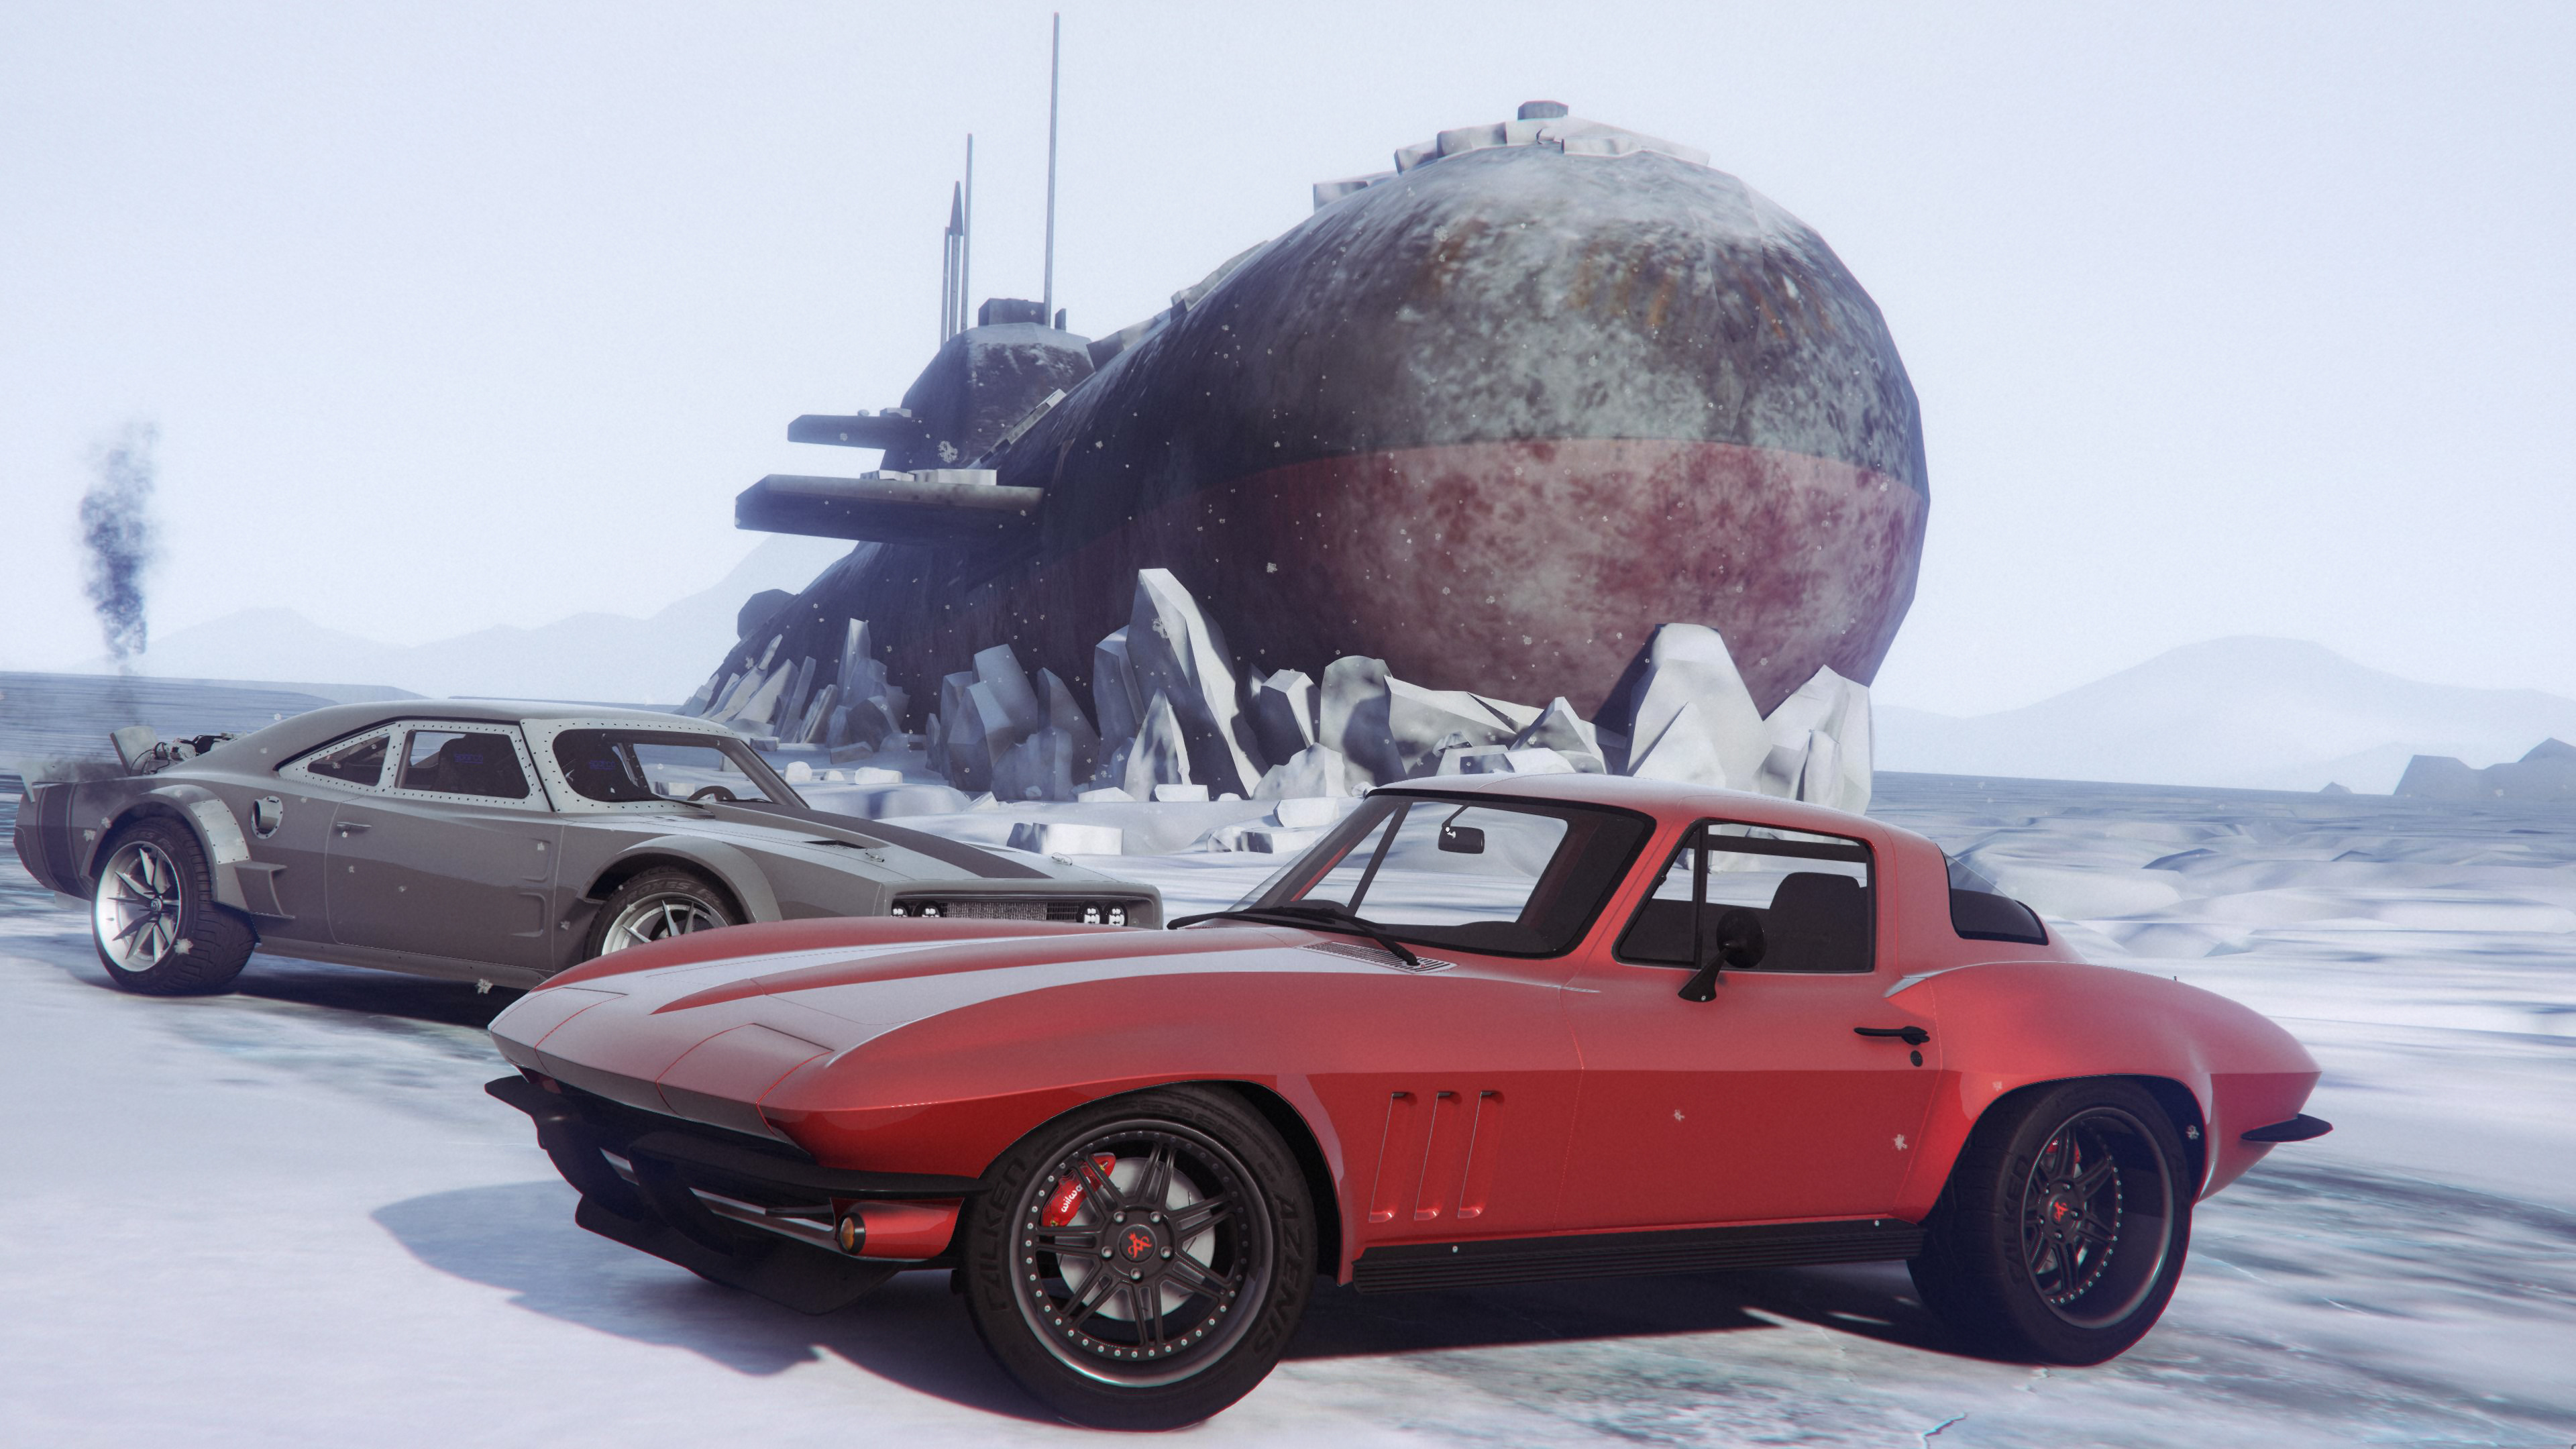 1966 Chevrolet Corvette Stingray From Fast Furious 8 Gta5 Modscom Coupe 5192e1 0 D2be62 1